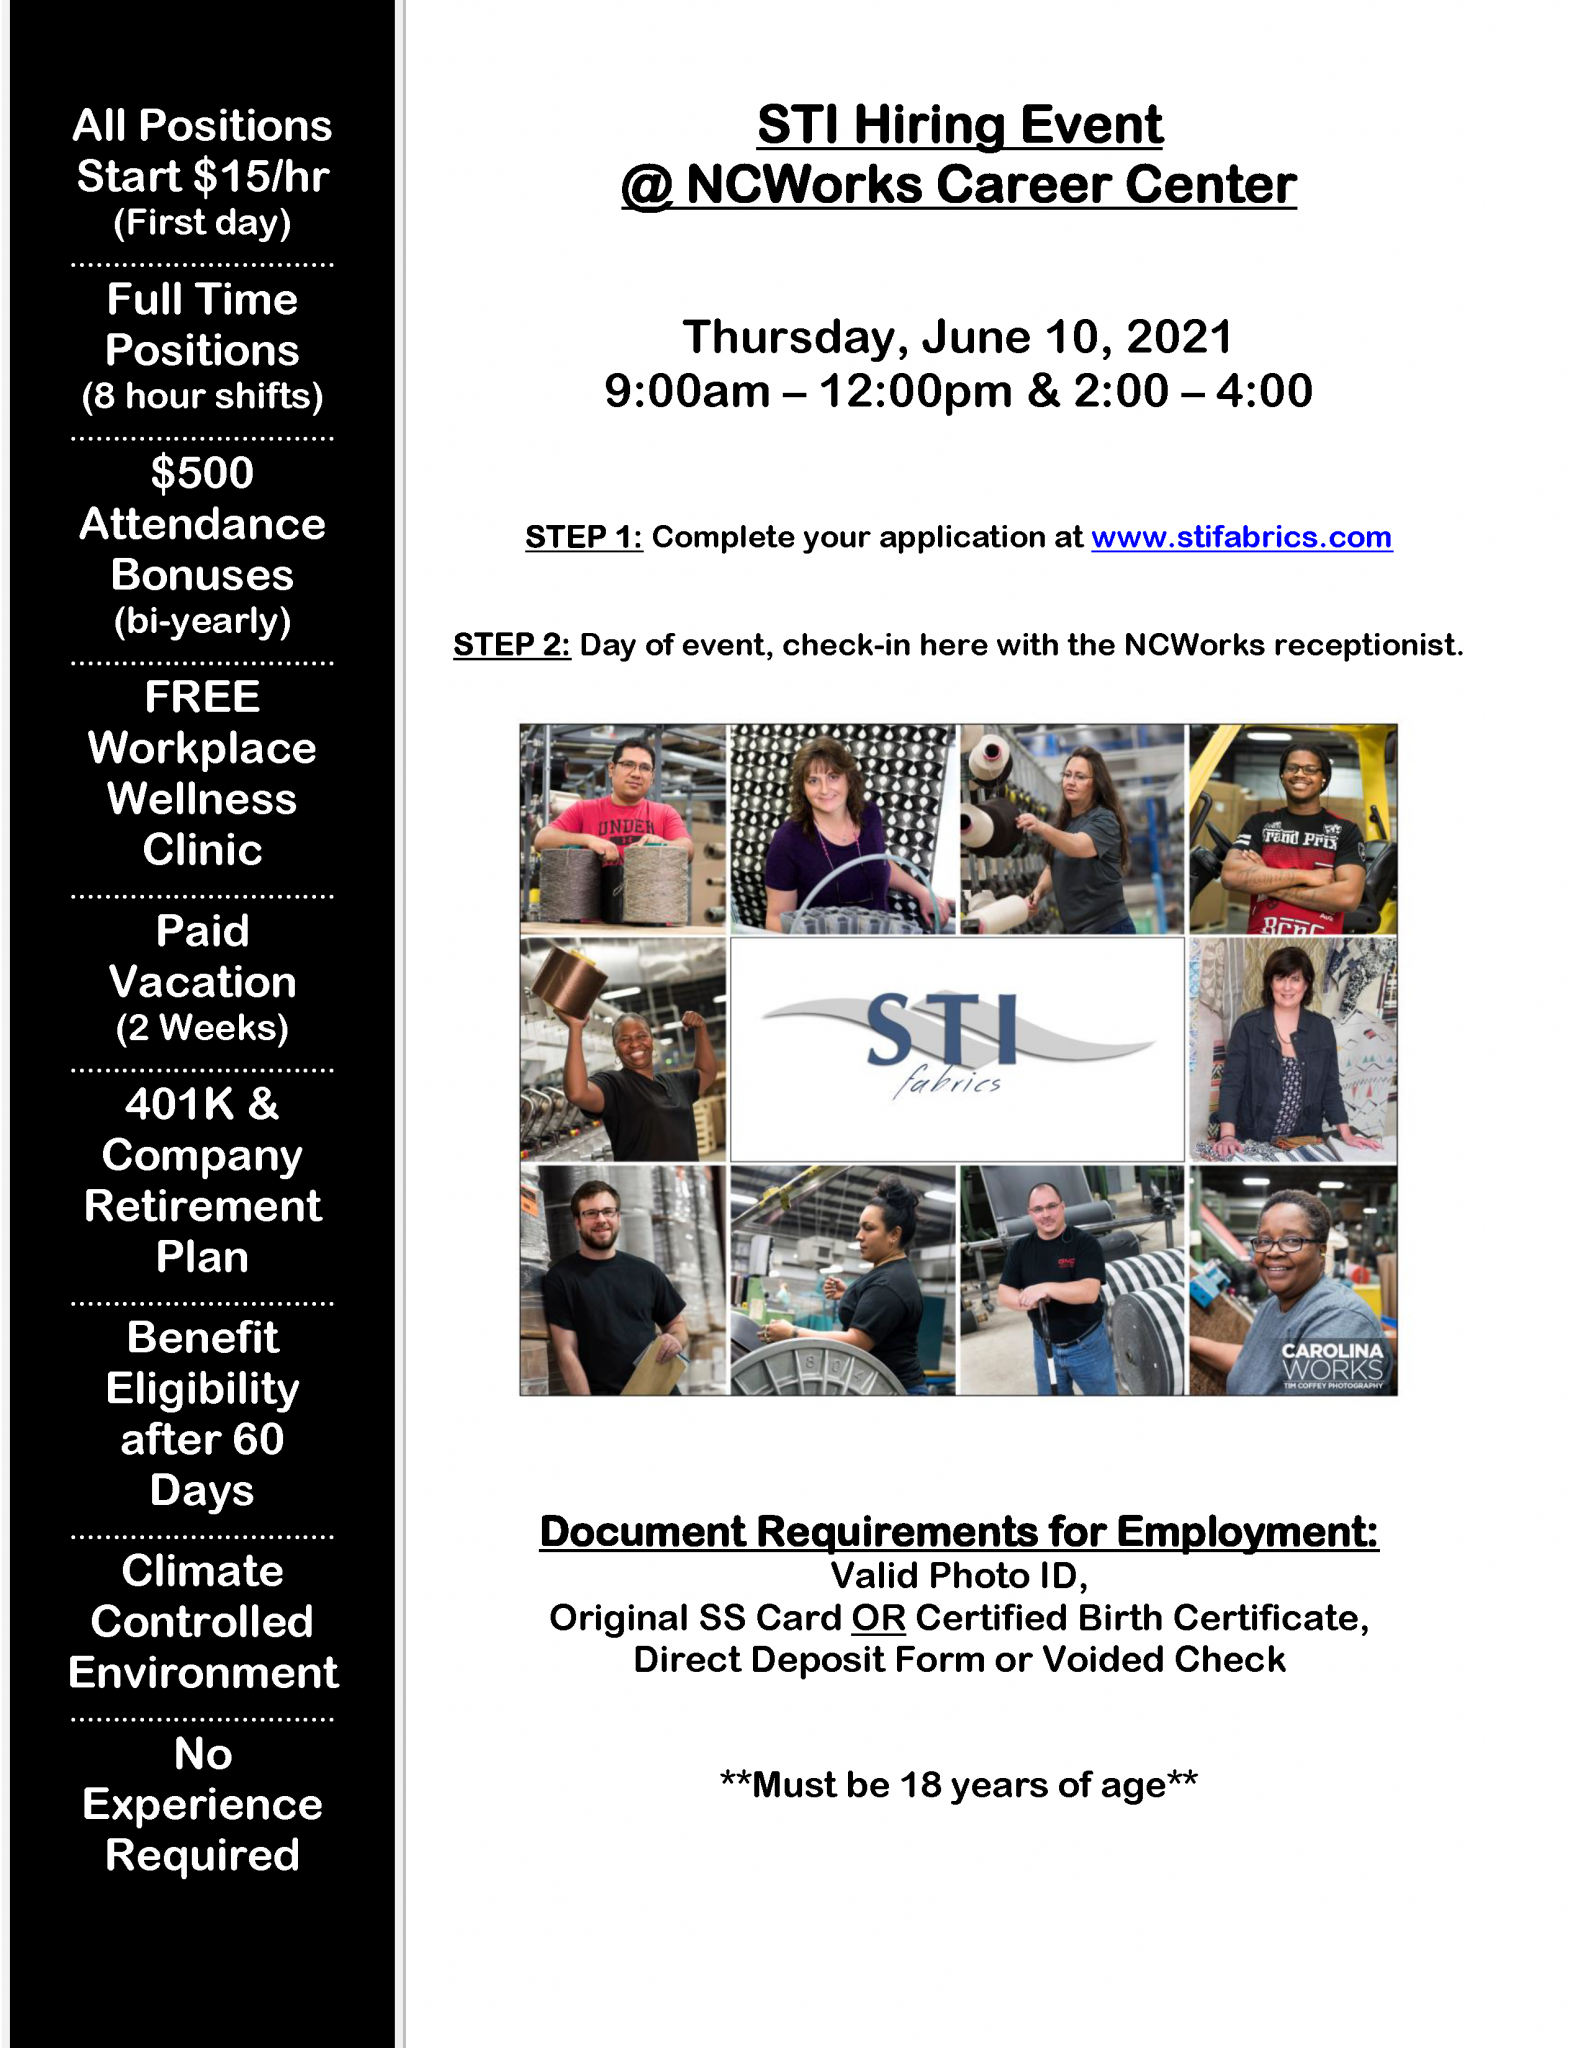 STI Hiring event information.. PDF version is linked to page.